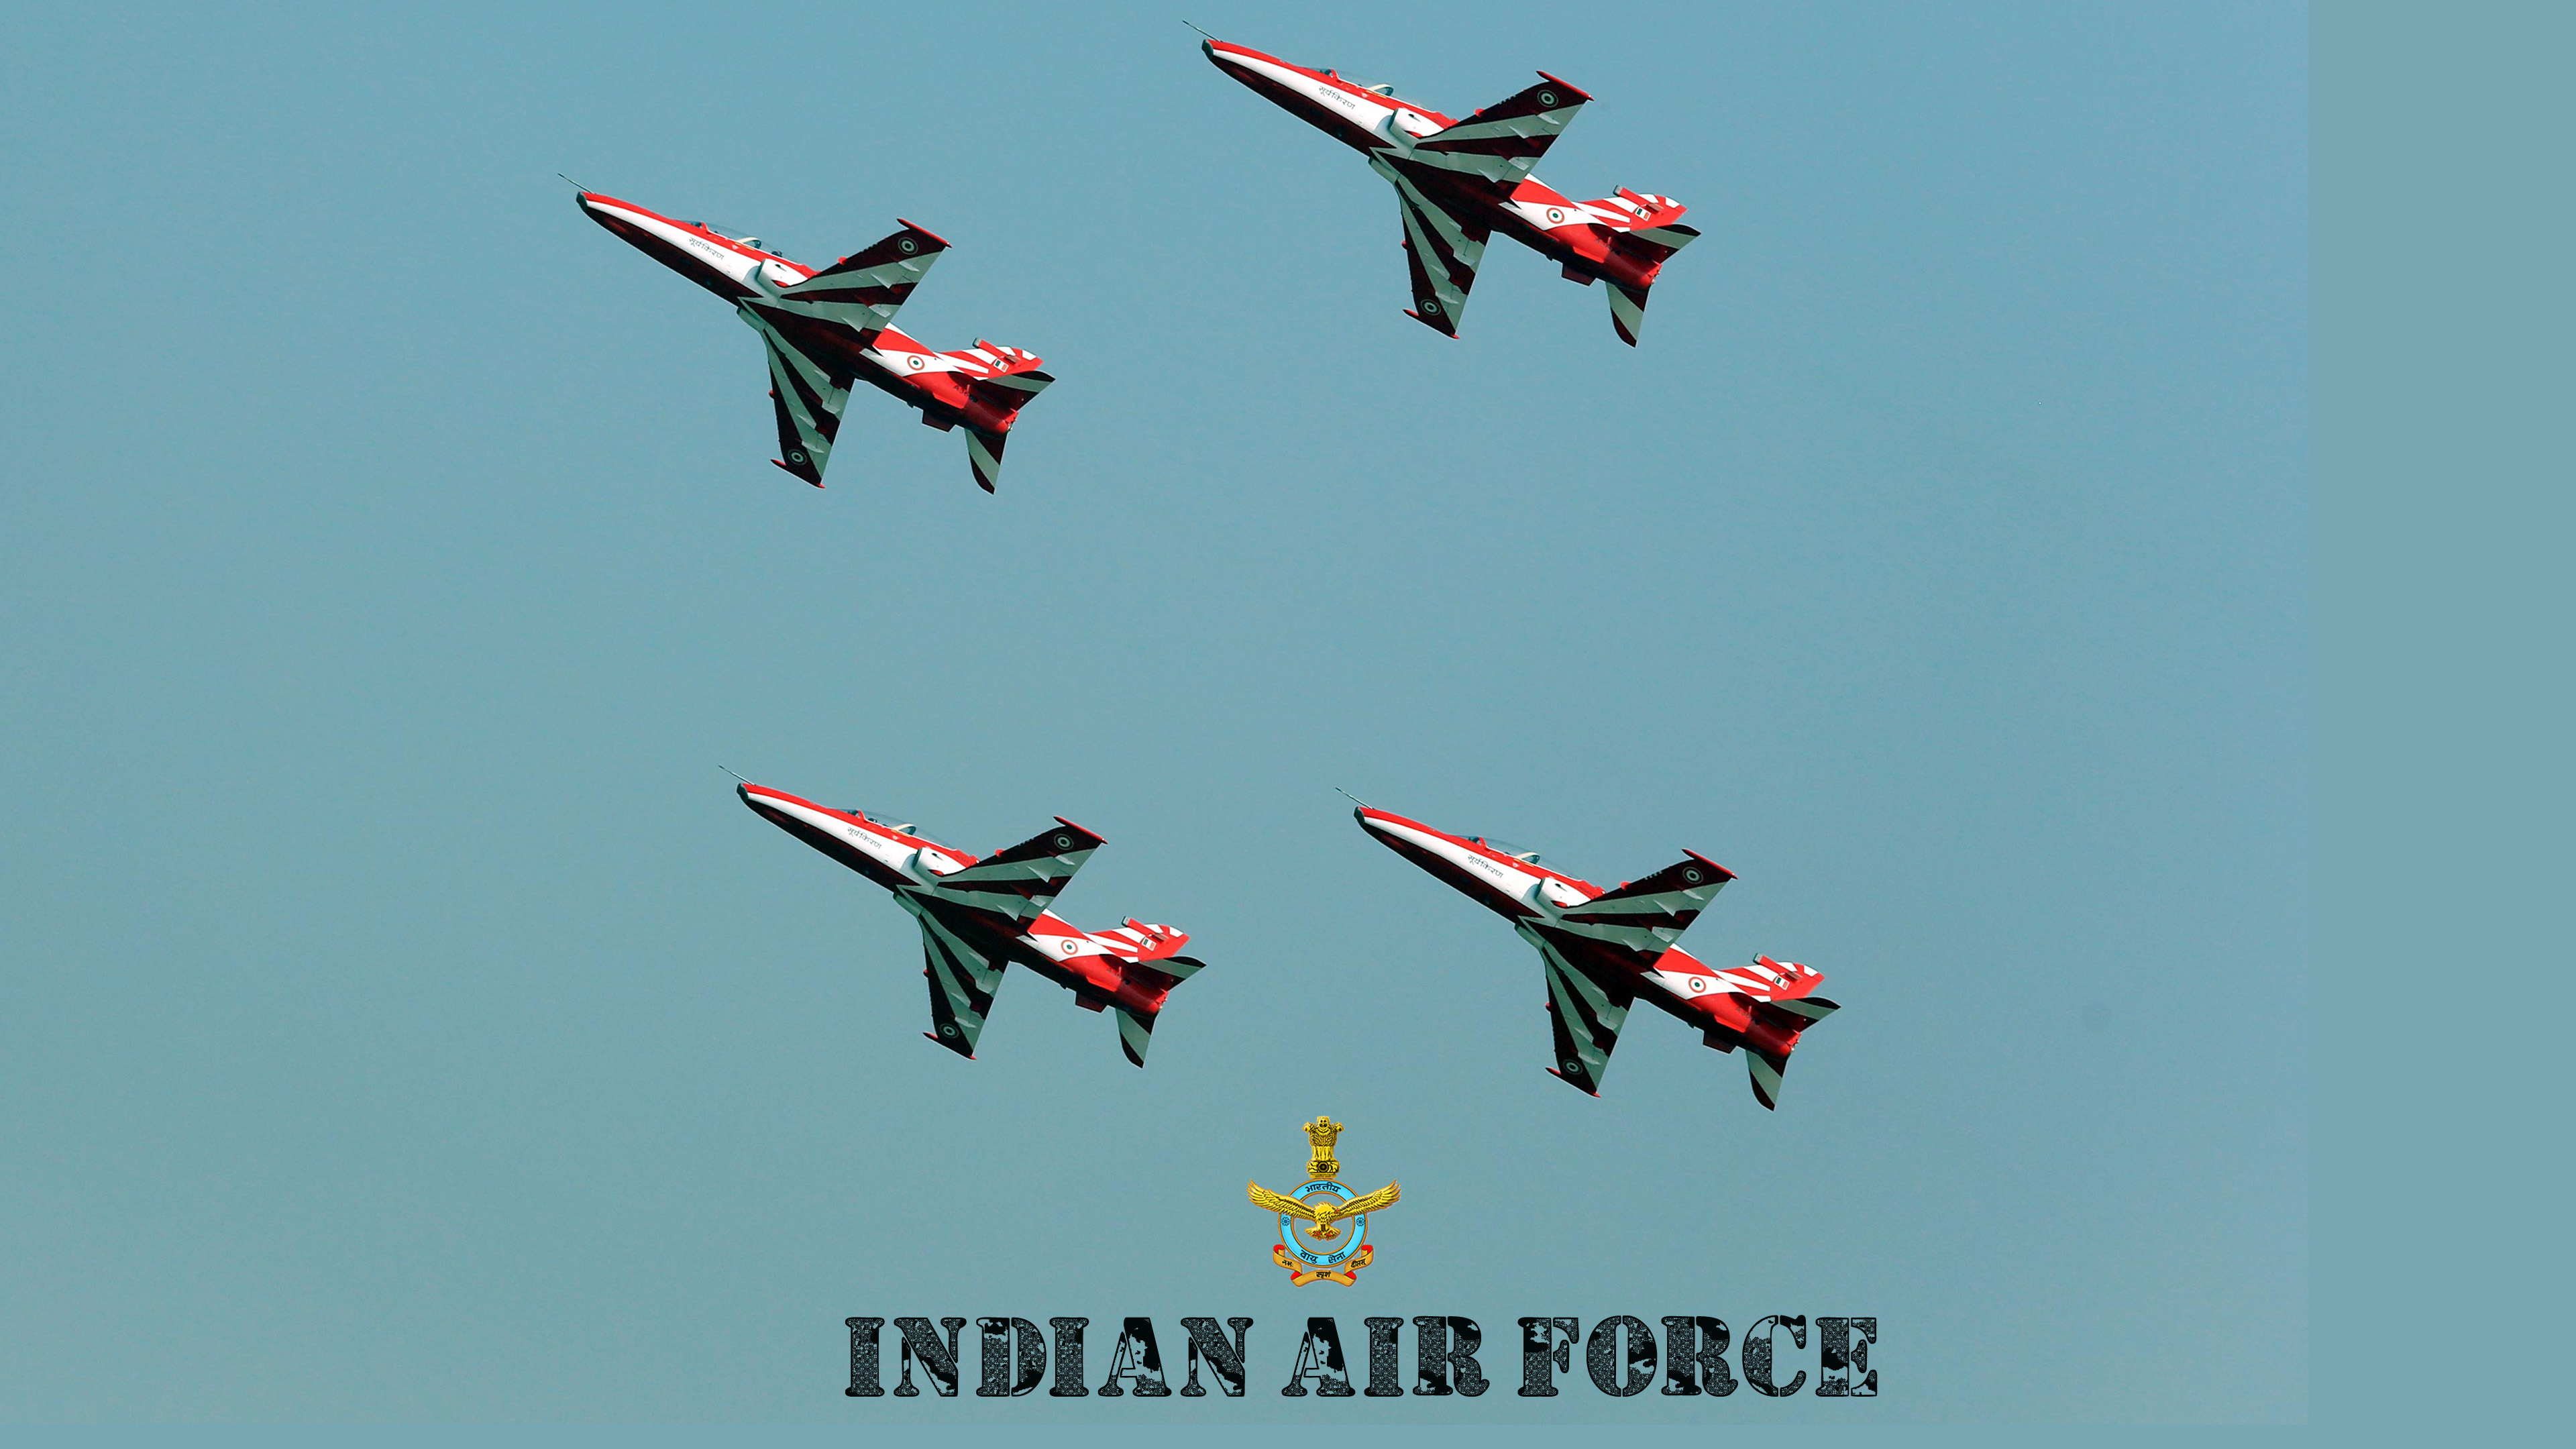 Indian Air Force Wallpaper With Advanced Jet Trainer Aircrafts Hd